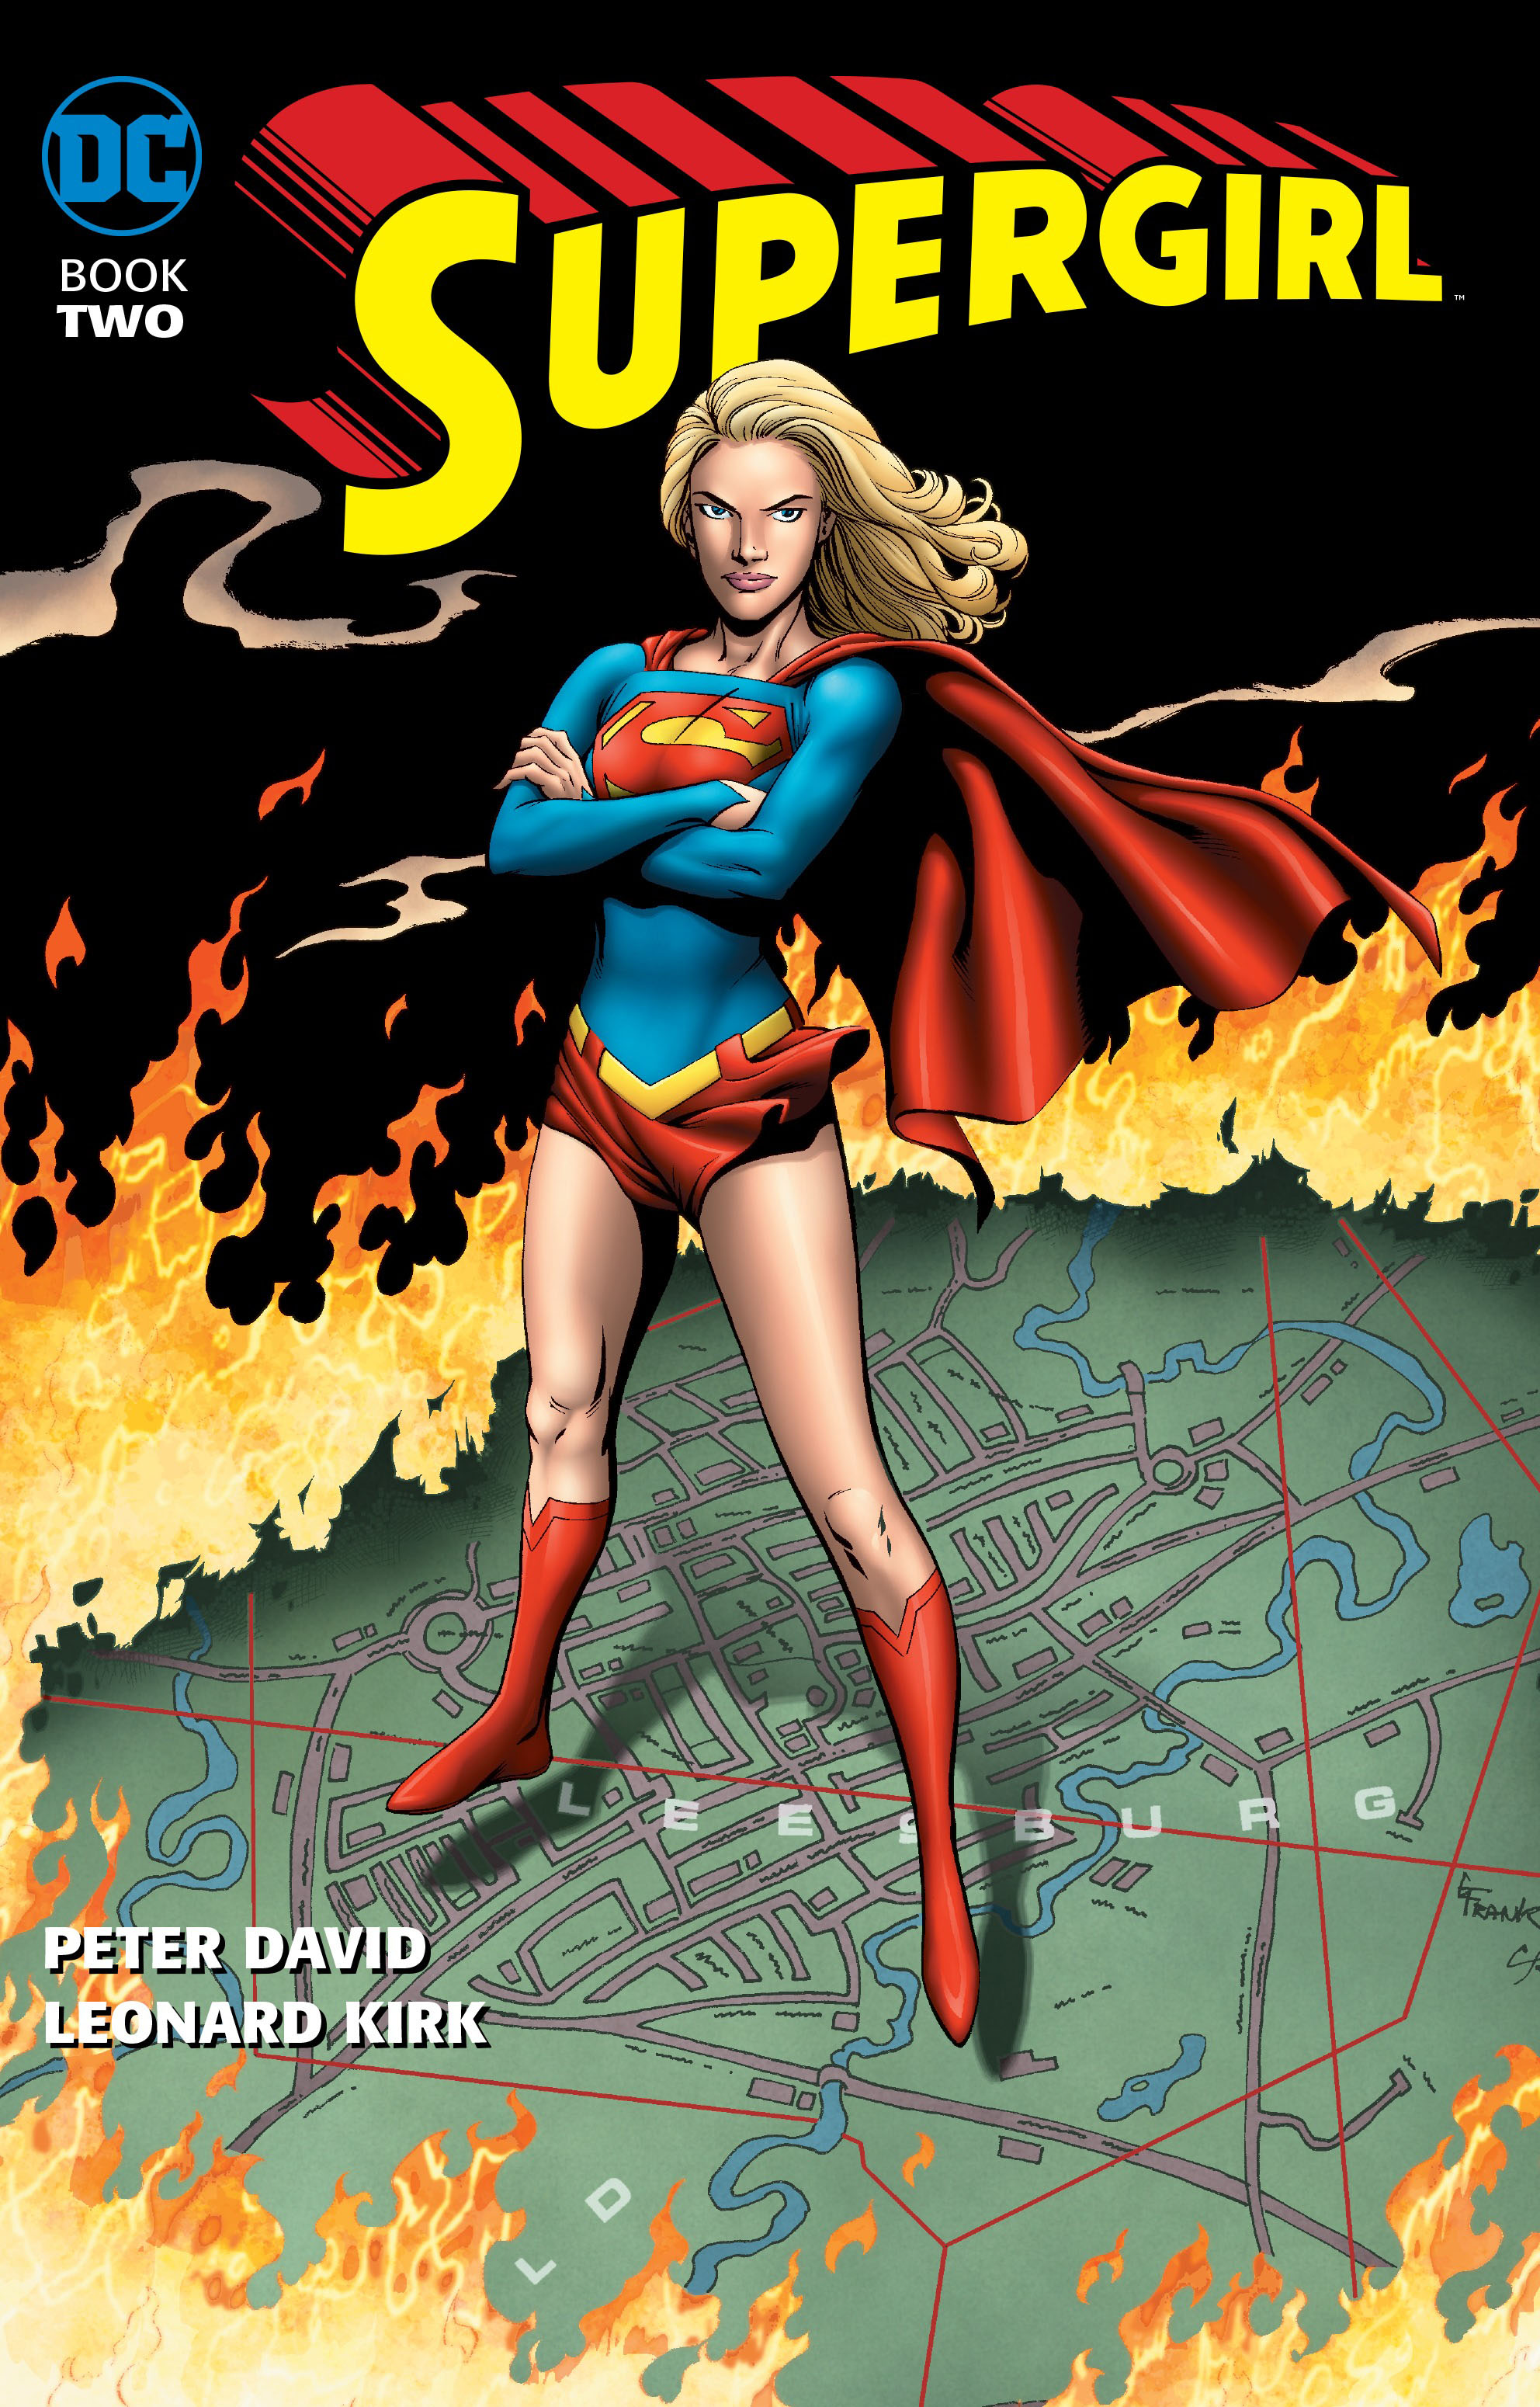 Supergirl Book Two supergirl book two